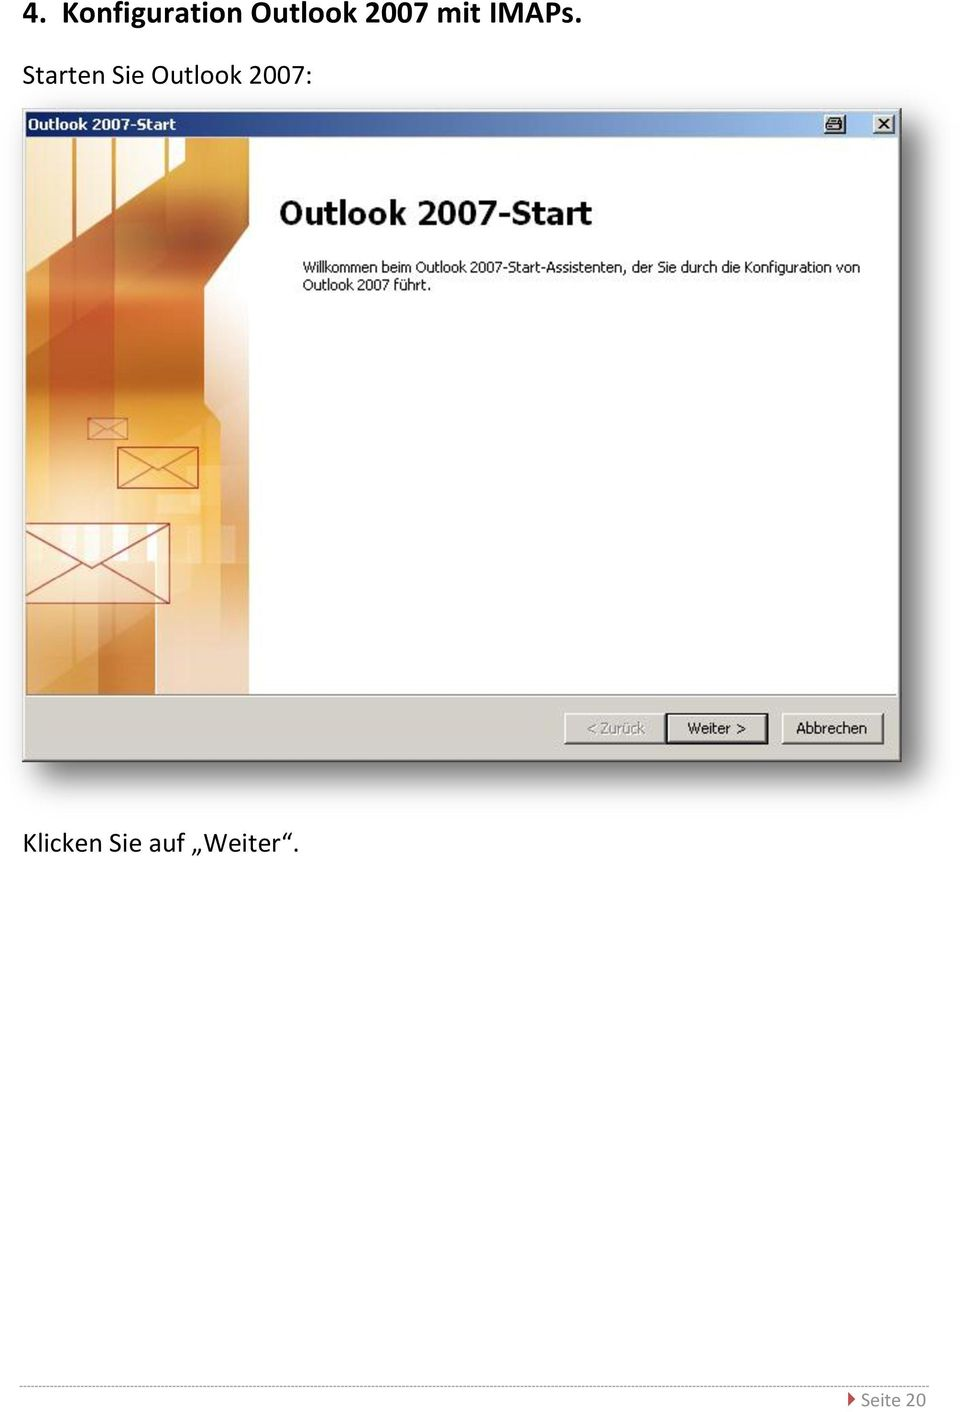 Starten Sie Outlook